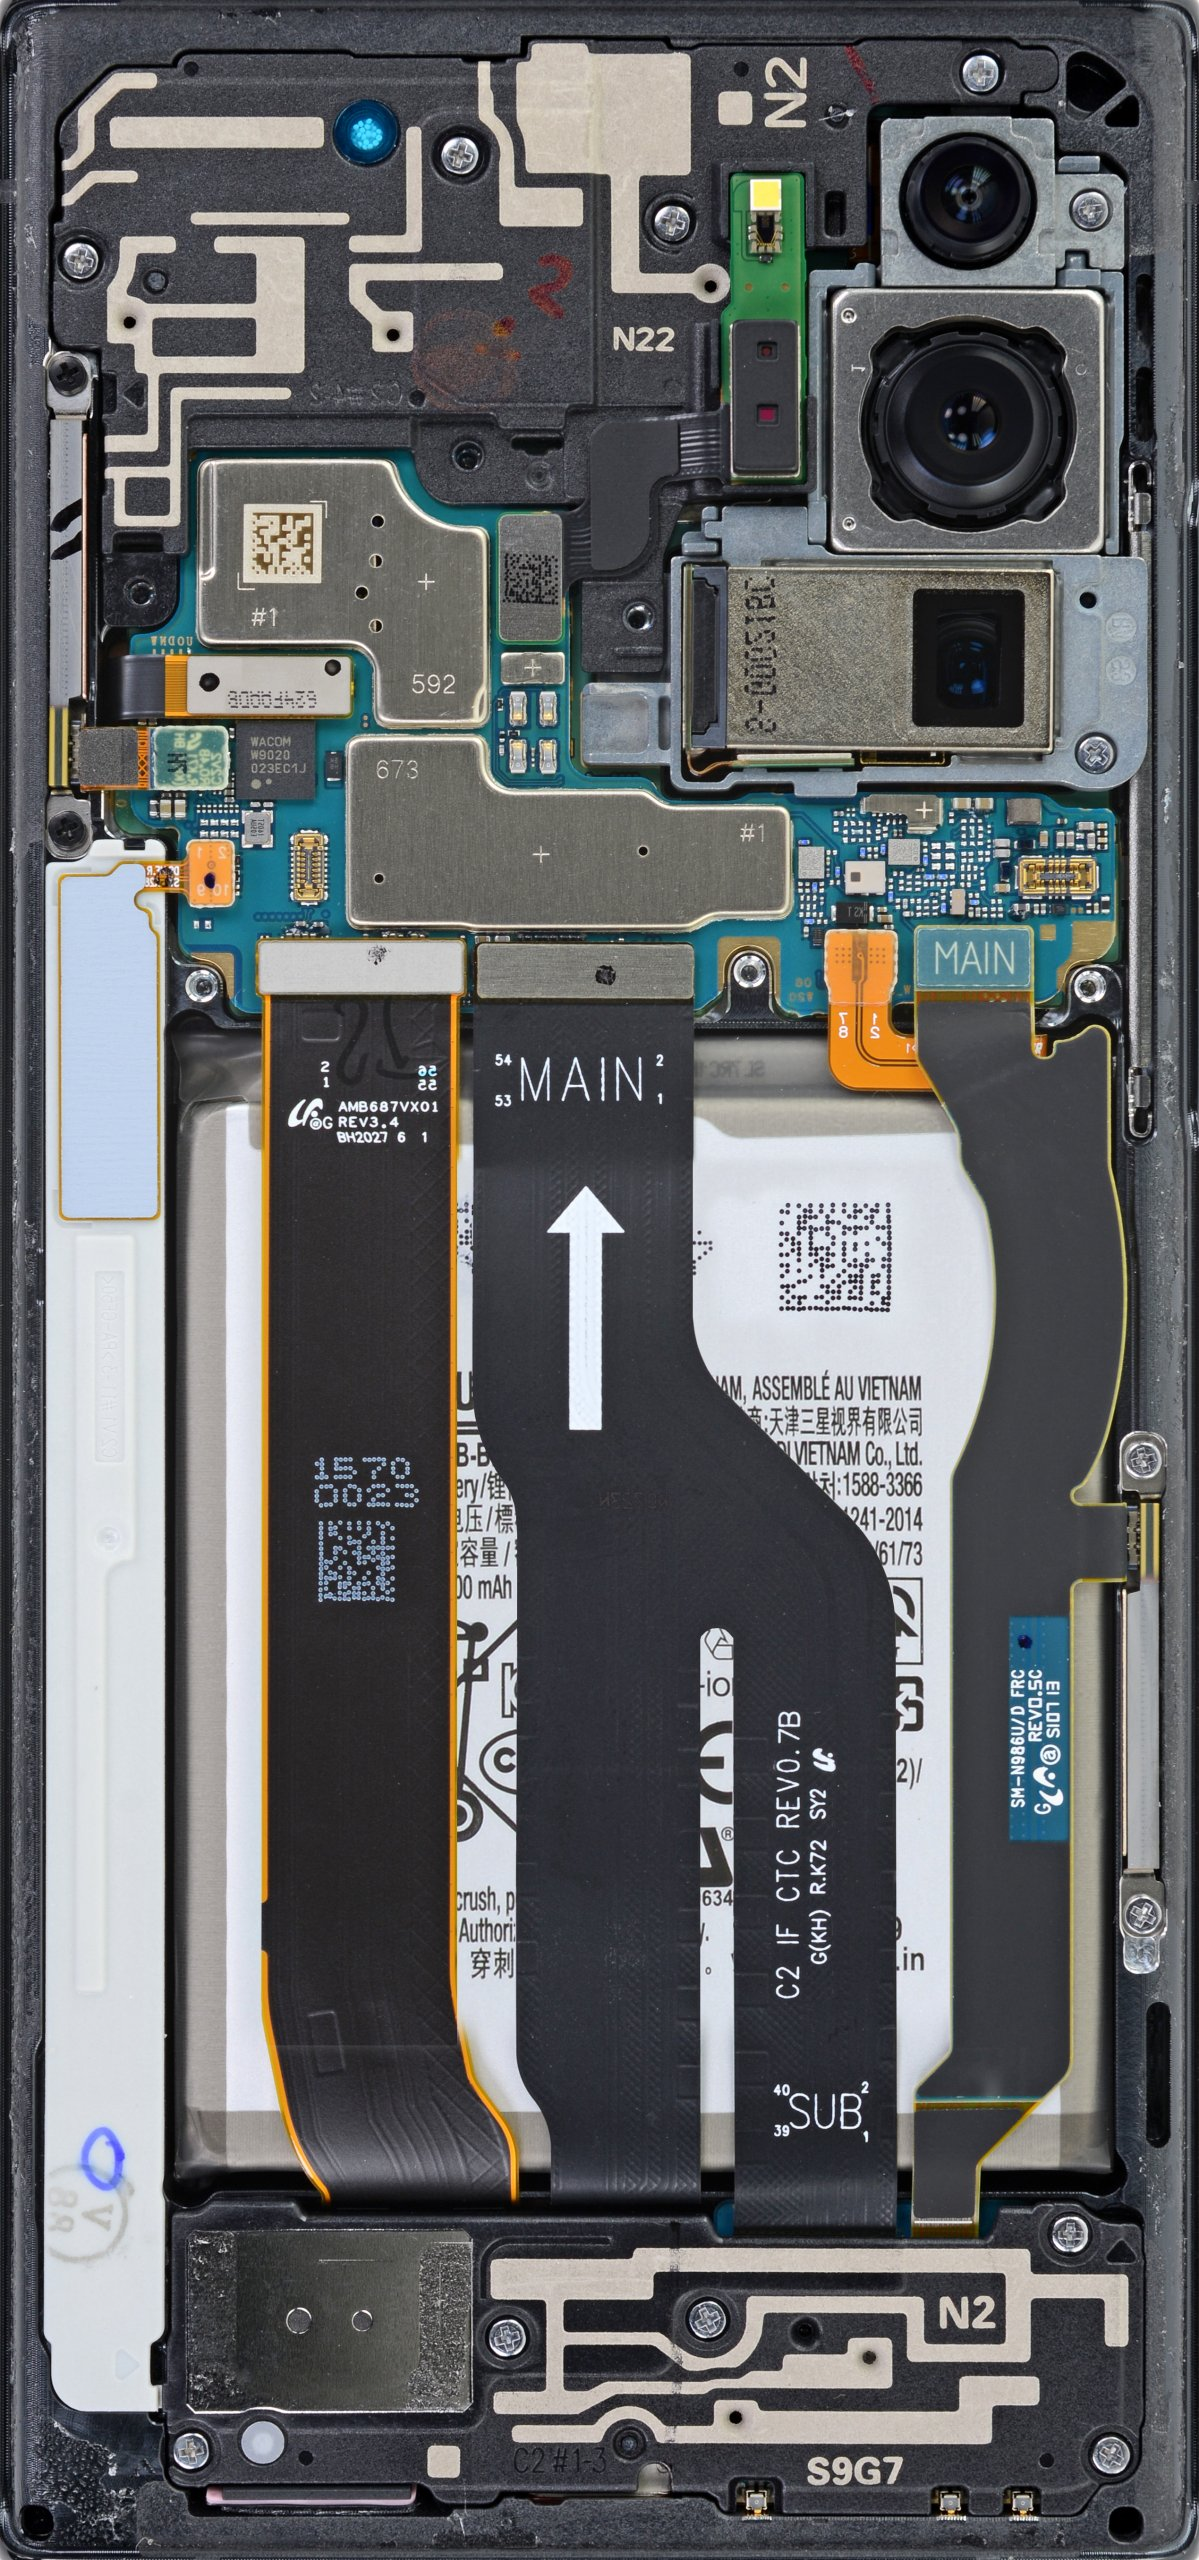 Galaxy Note 20 Ultra internals